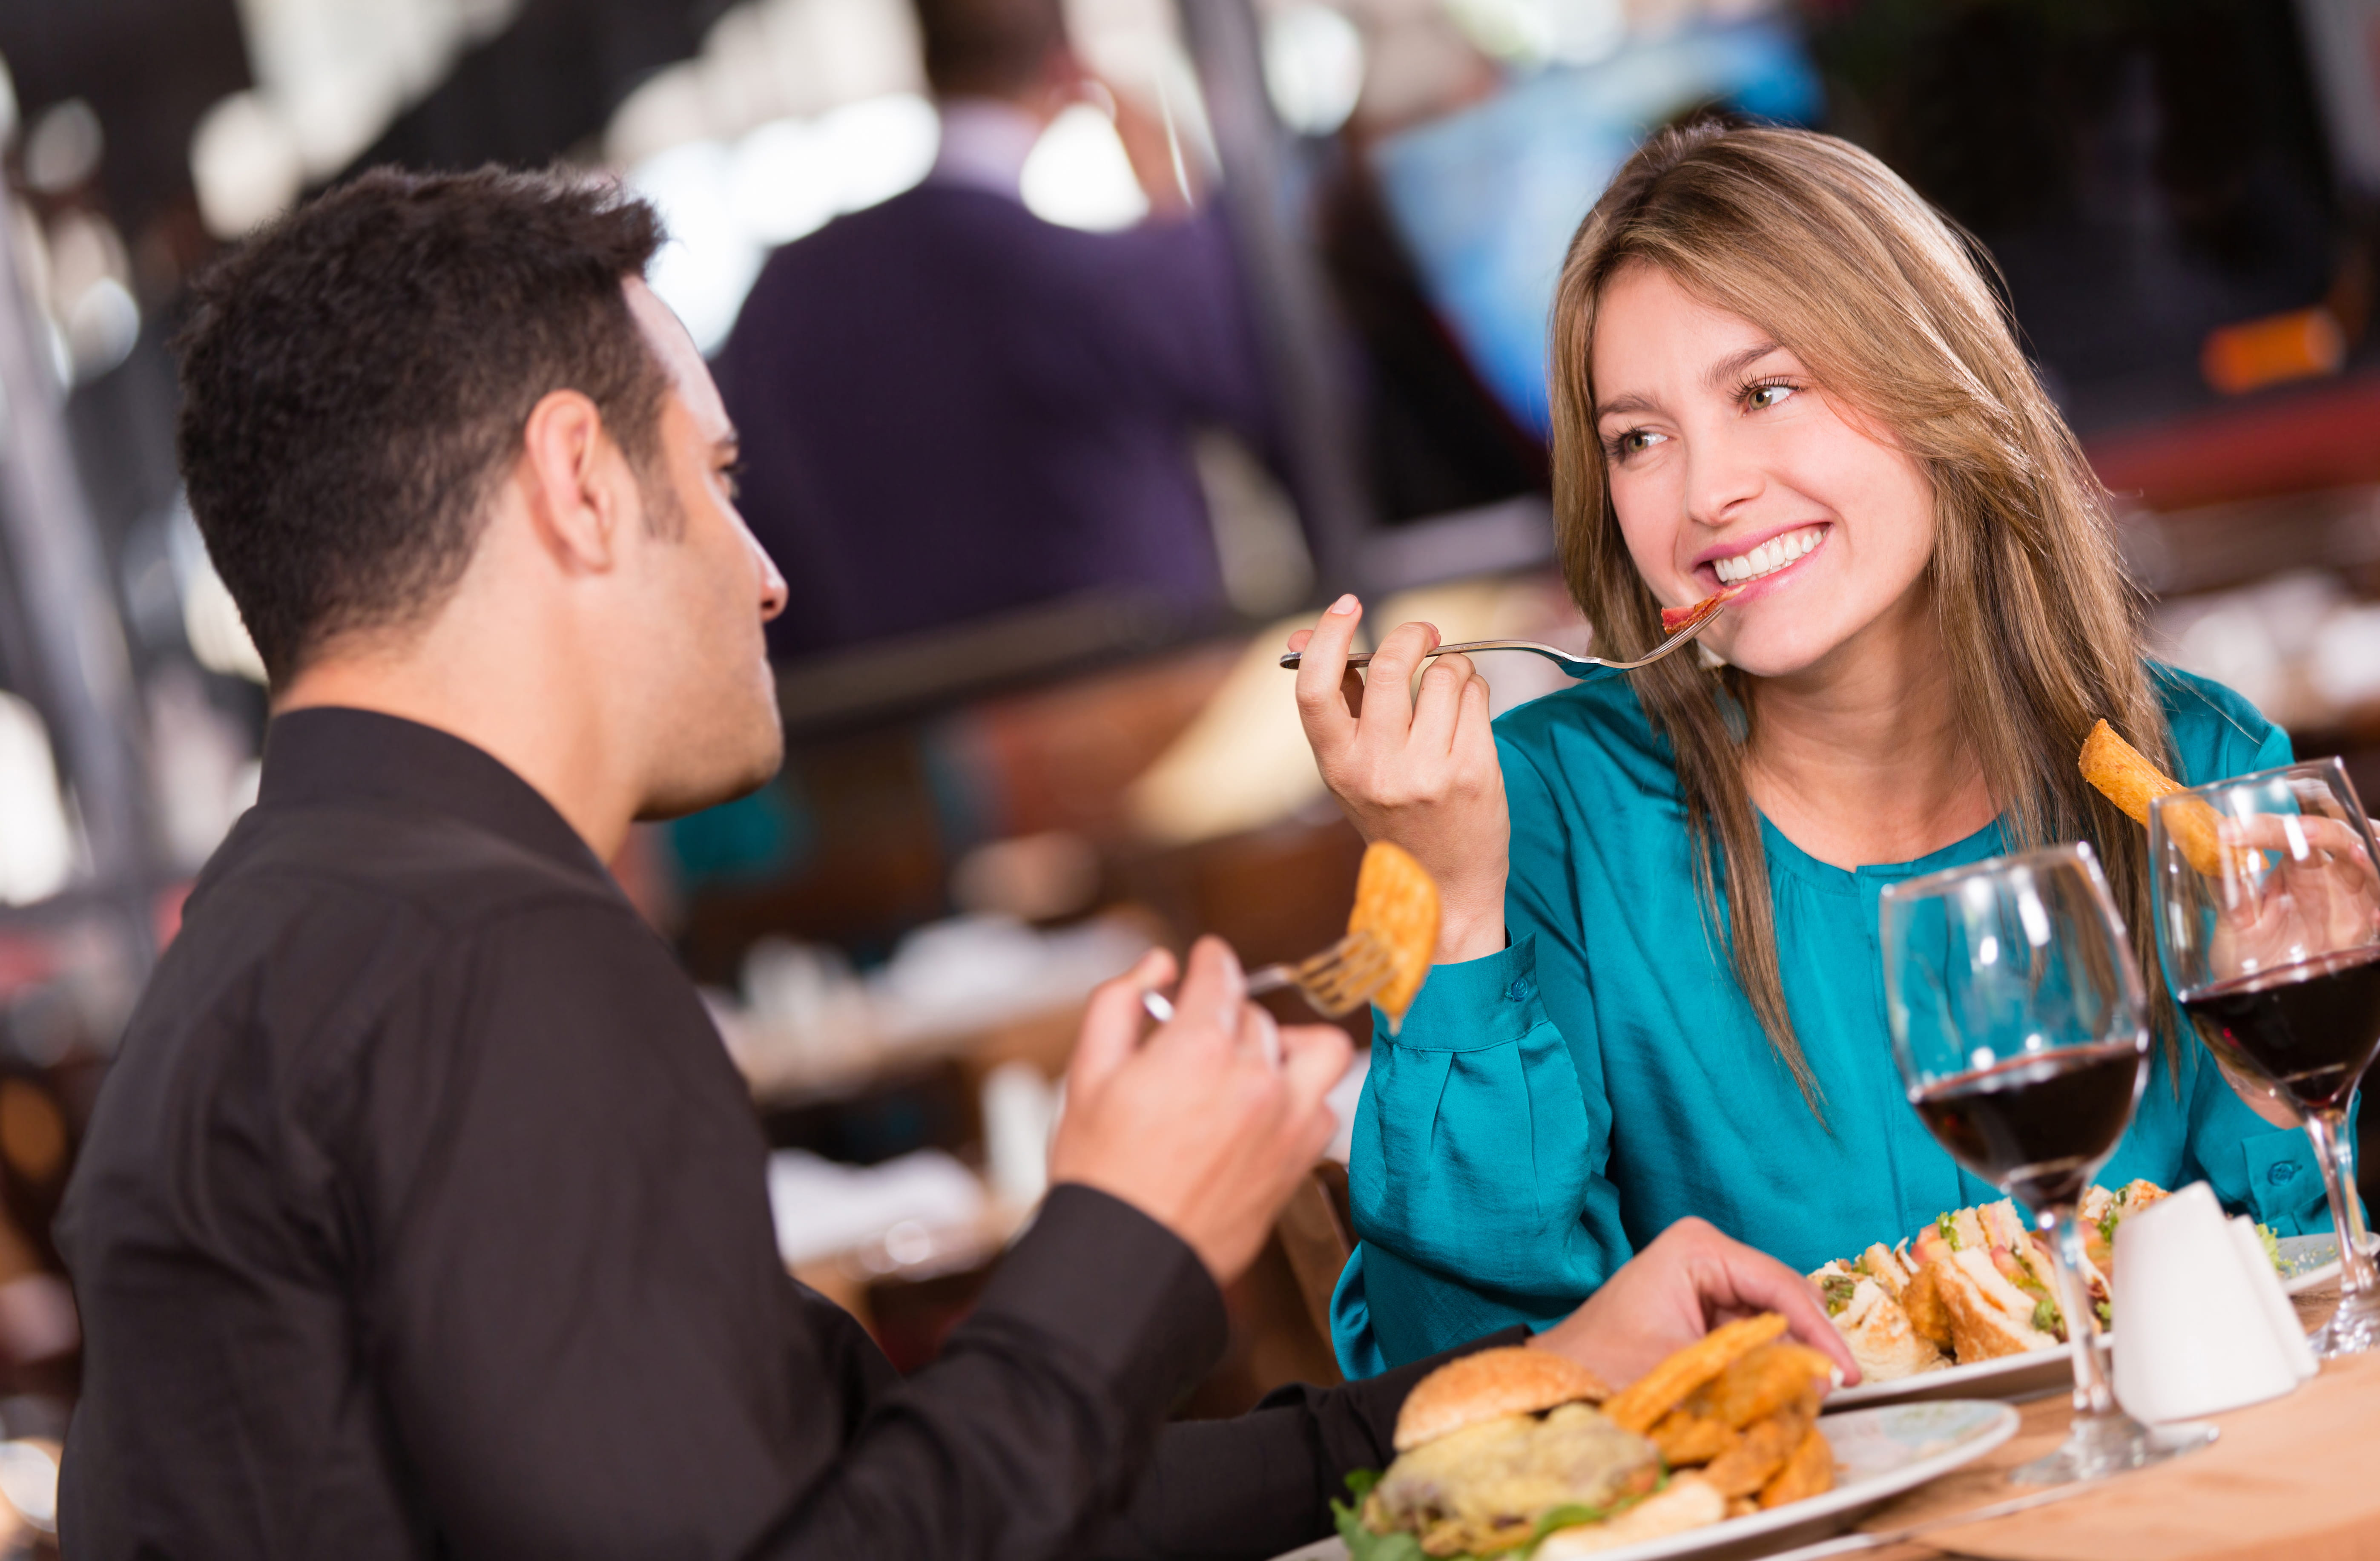 Matchmaking Success Stories and Reviews: Its Just Lunch